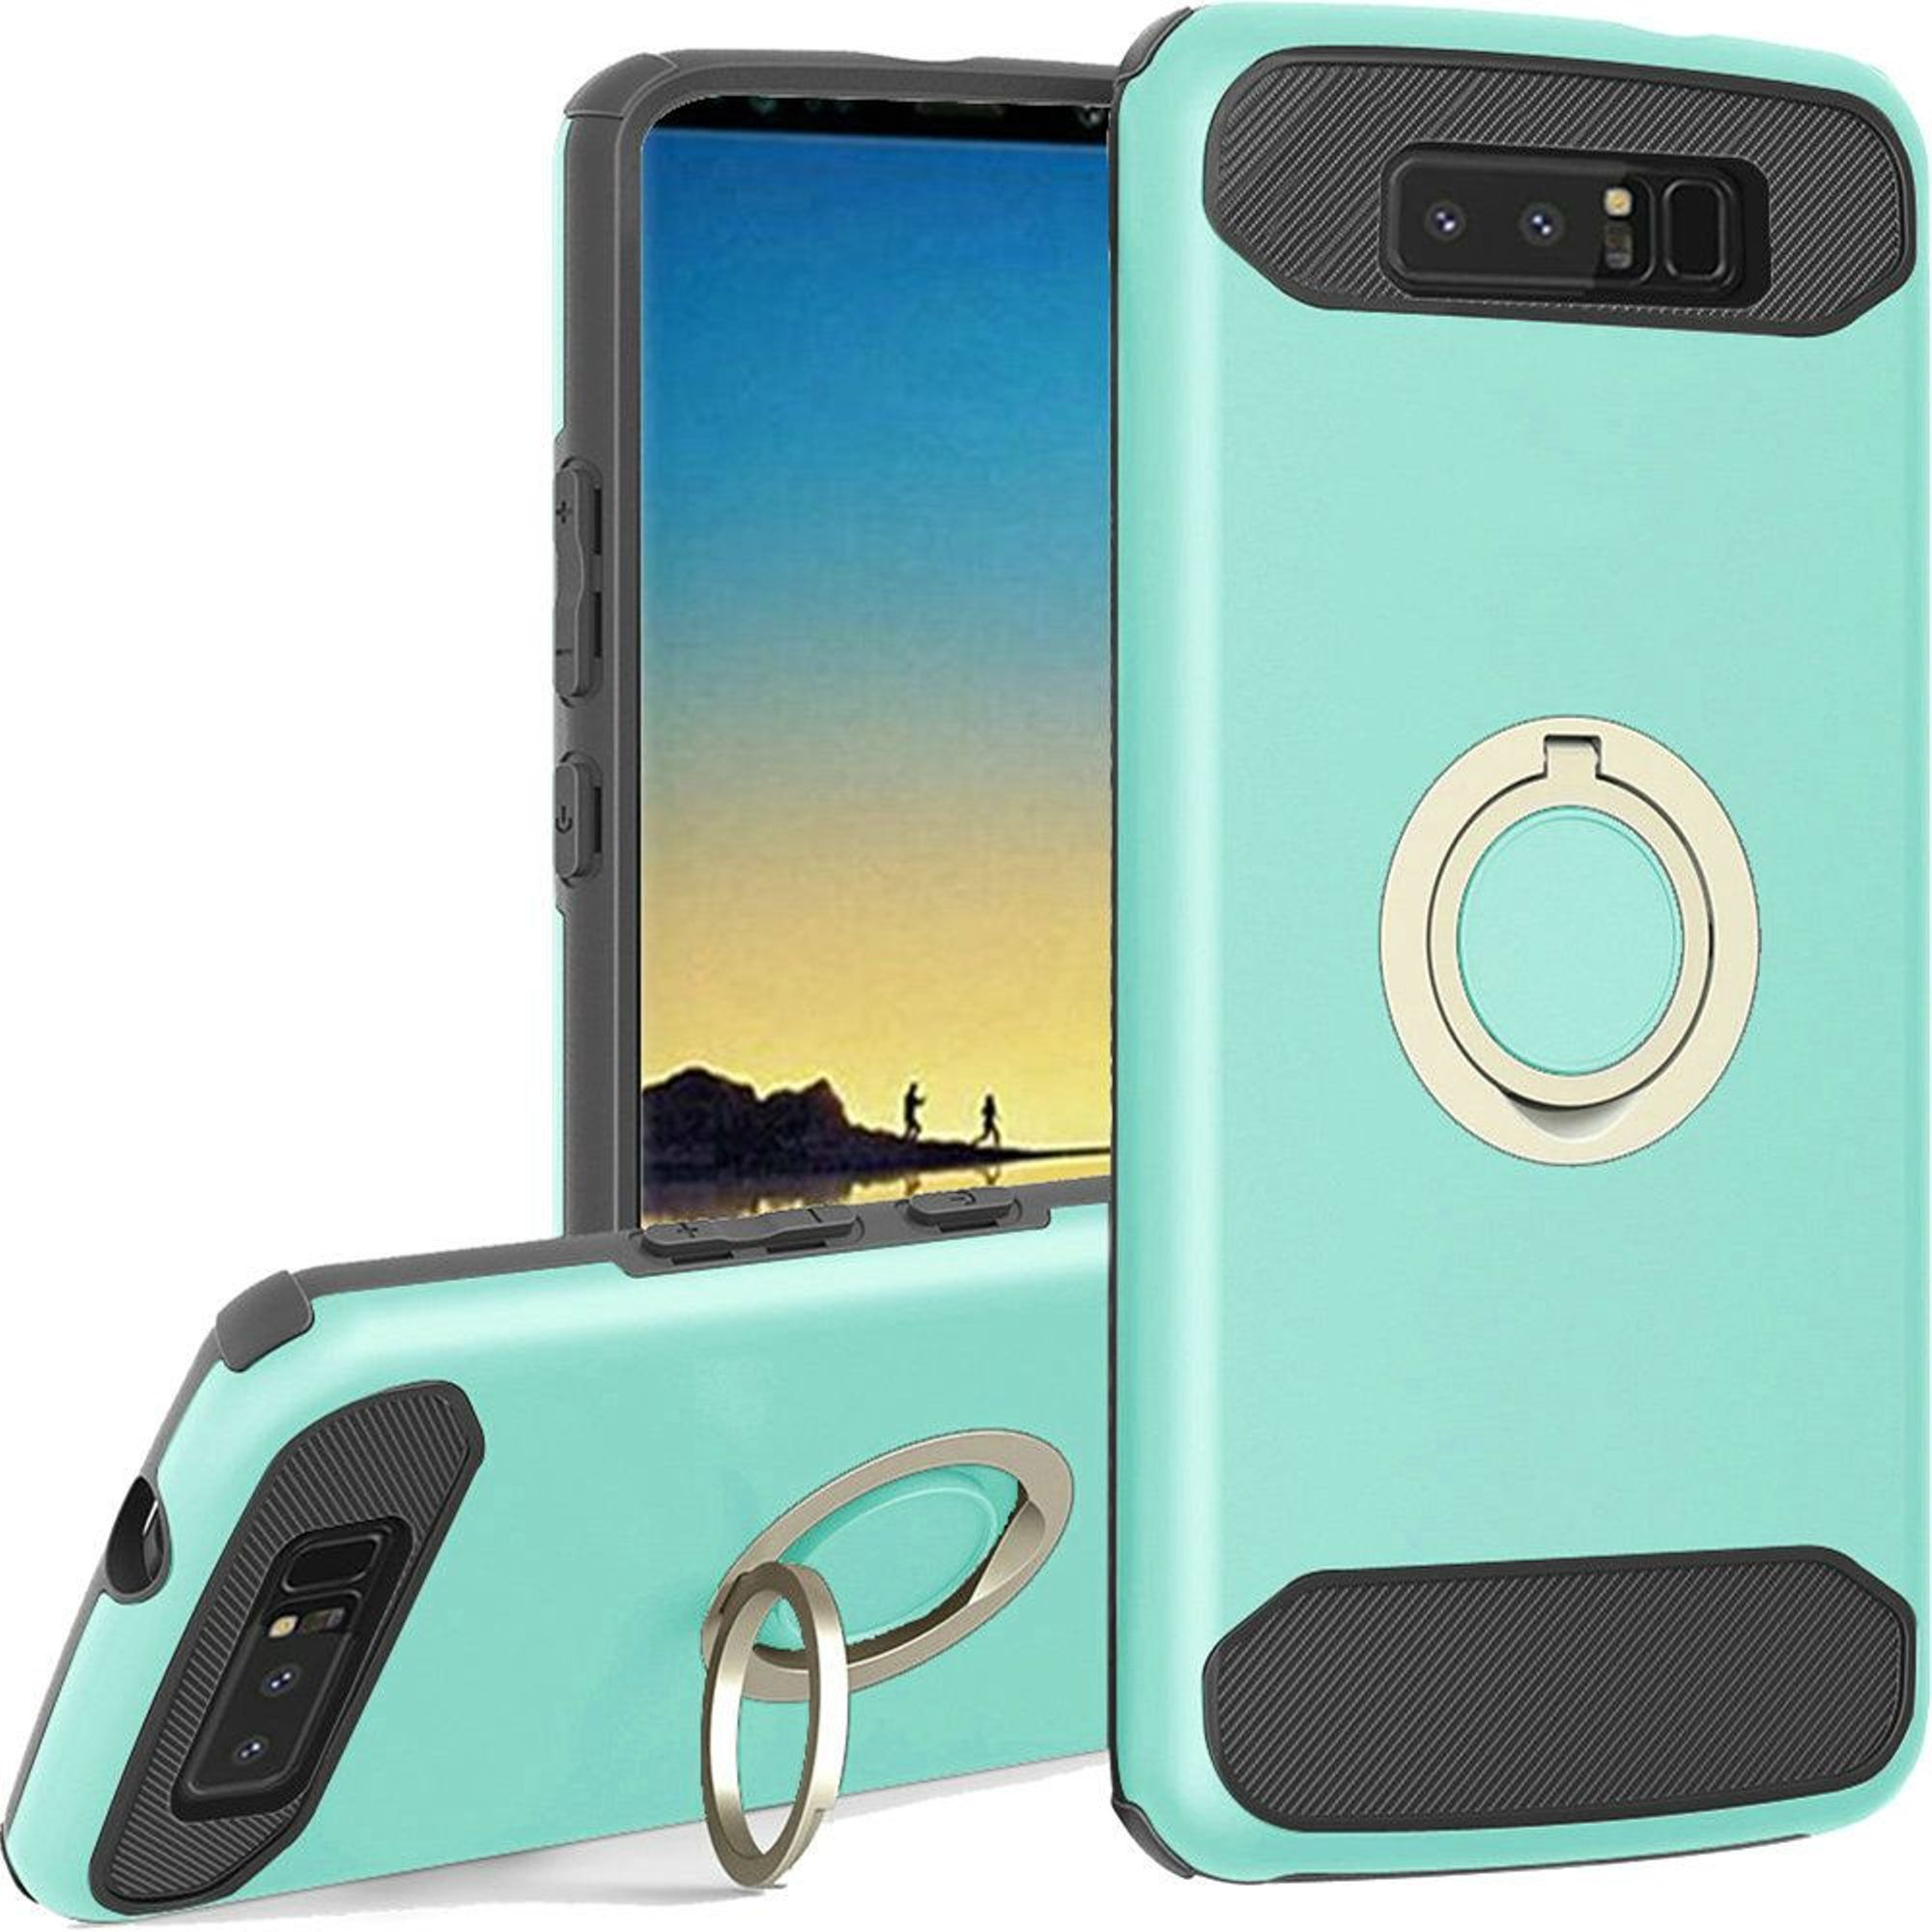 Samsung Galaxy Note 8 Case, by HR Wireless Dual Layer [Shock Absorbing] Hybrid Ring stand Hard Snap-in Case Cover For Samsung Galaxy Note 8, Teal/Black